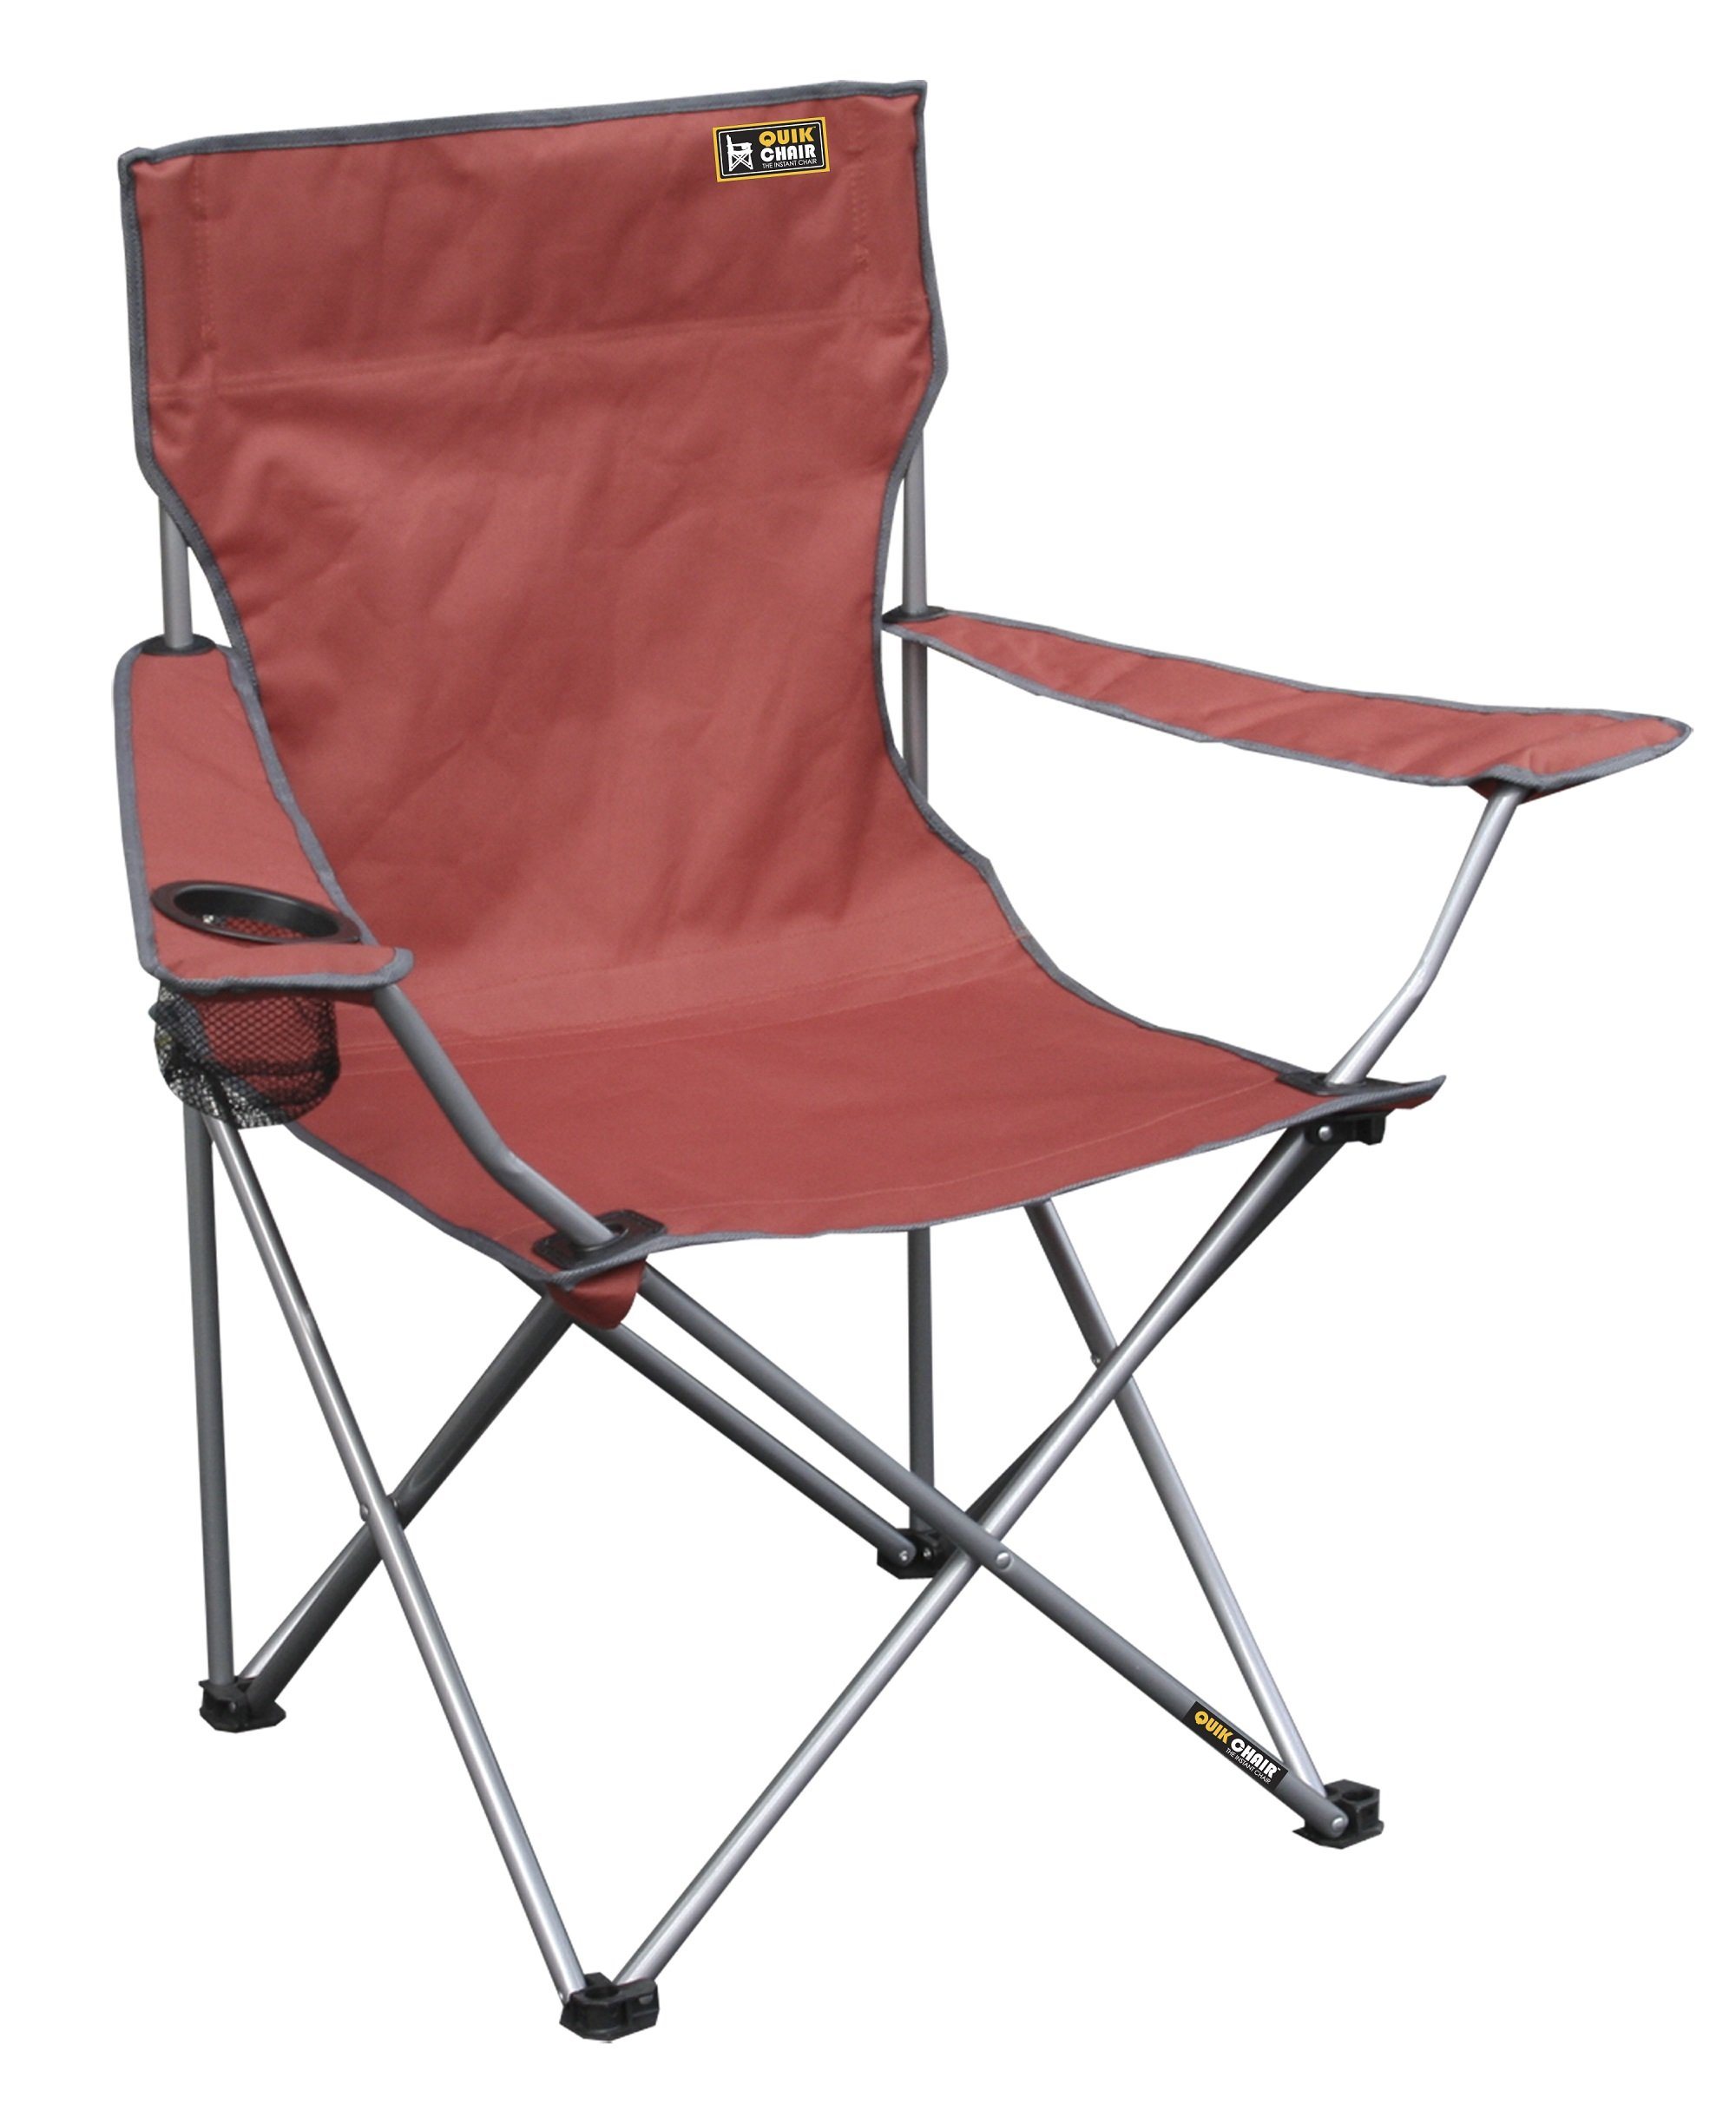 Quik Chair Portable Folding Chair with Arm Rest Cup Holder and Carrying and Storage Bag, Red by Quik Shade